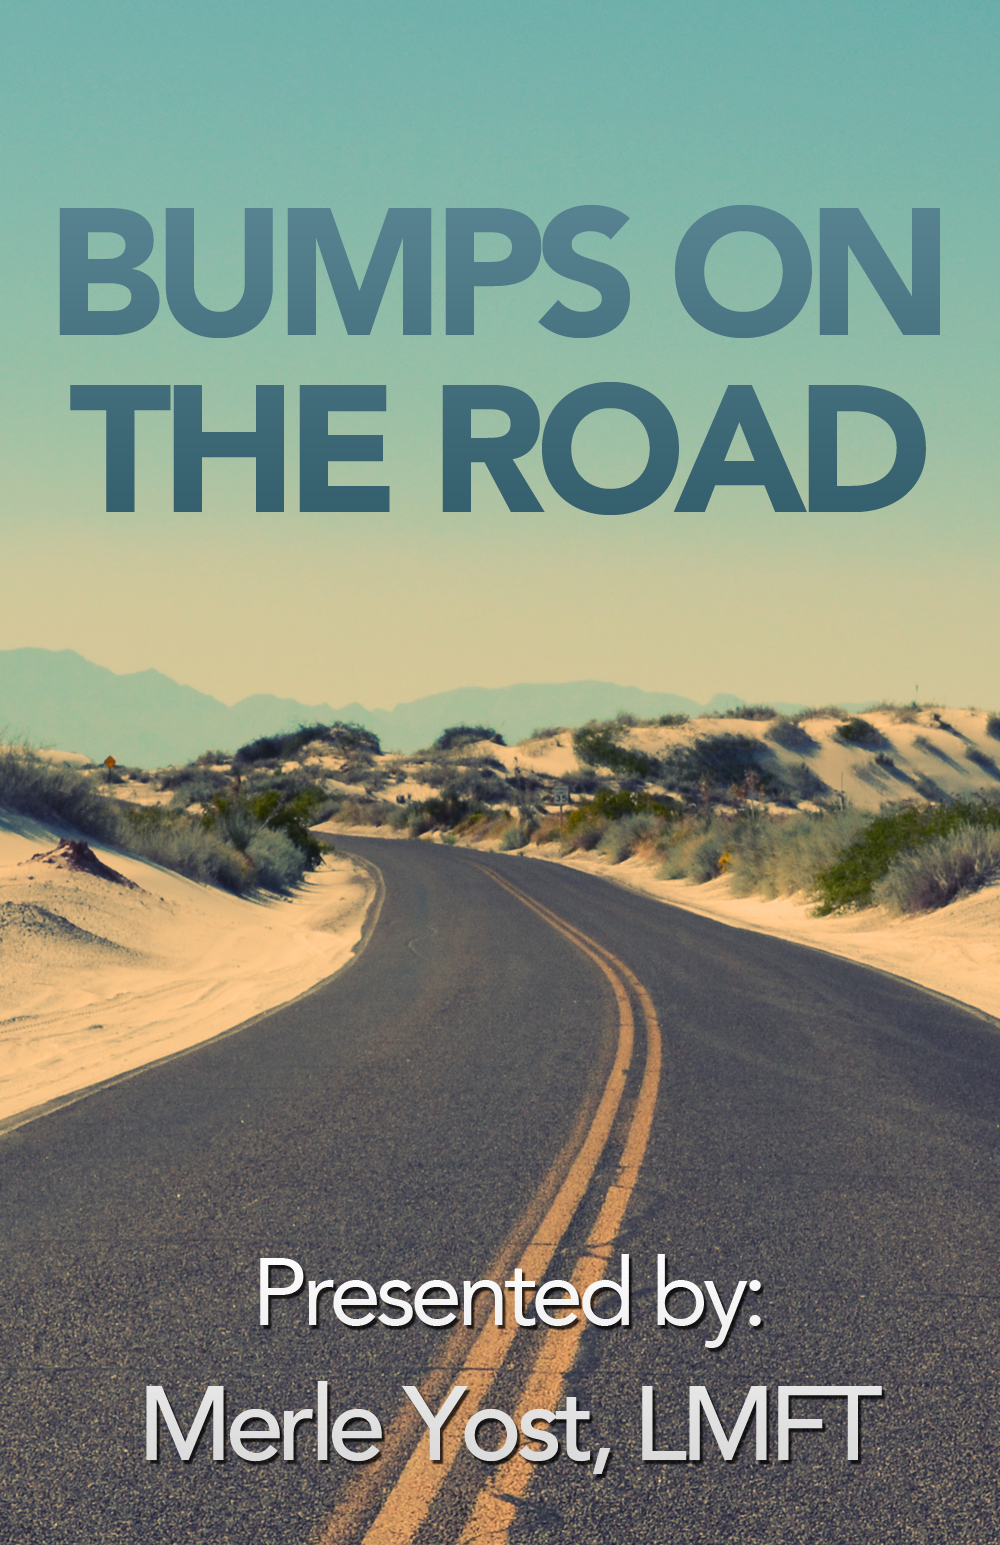 Bumps on the Road Online Workshop Poster